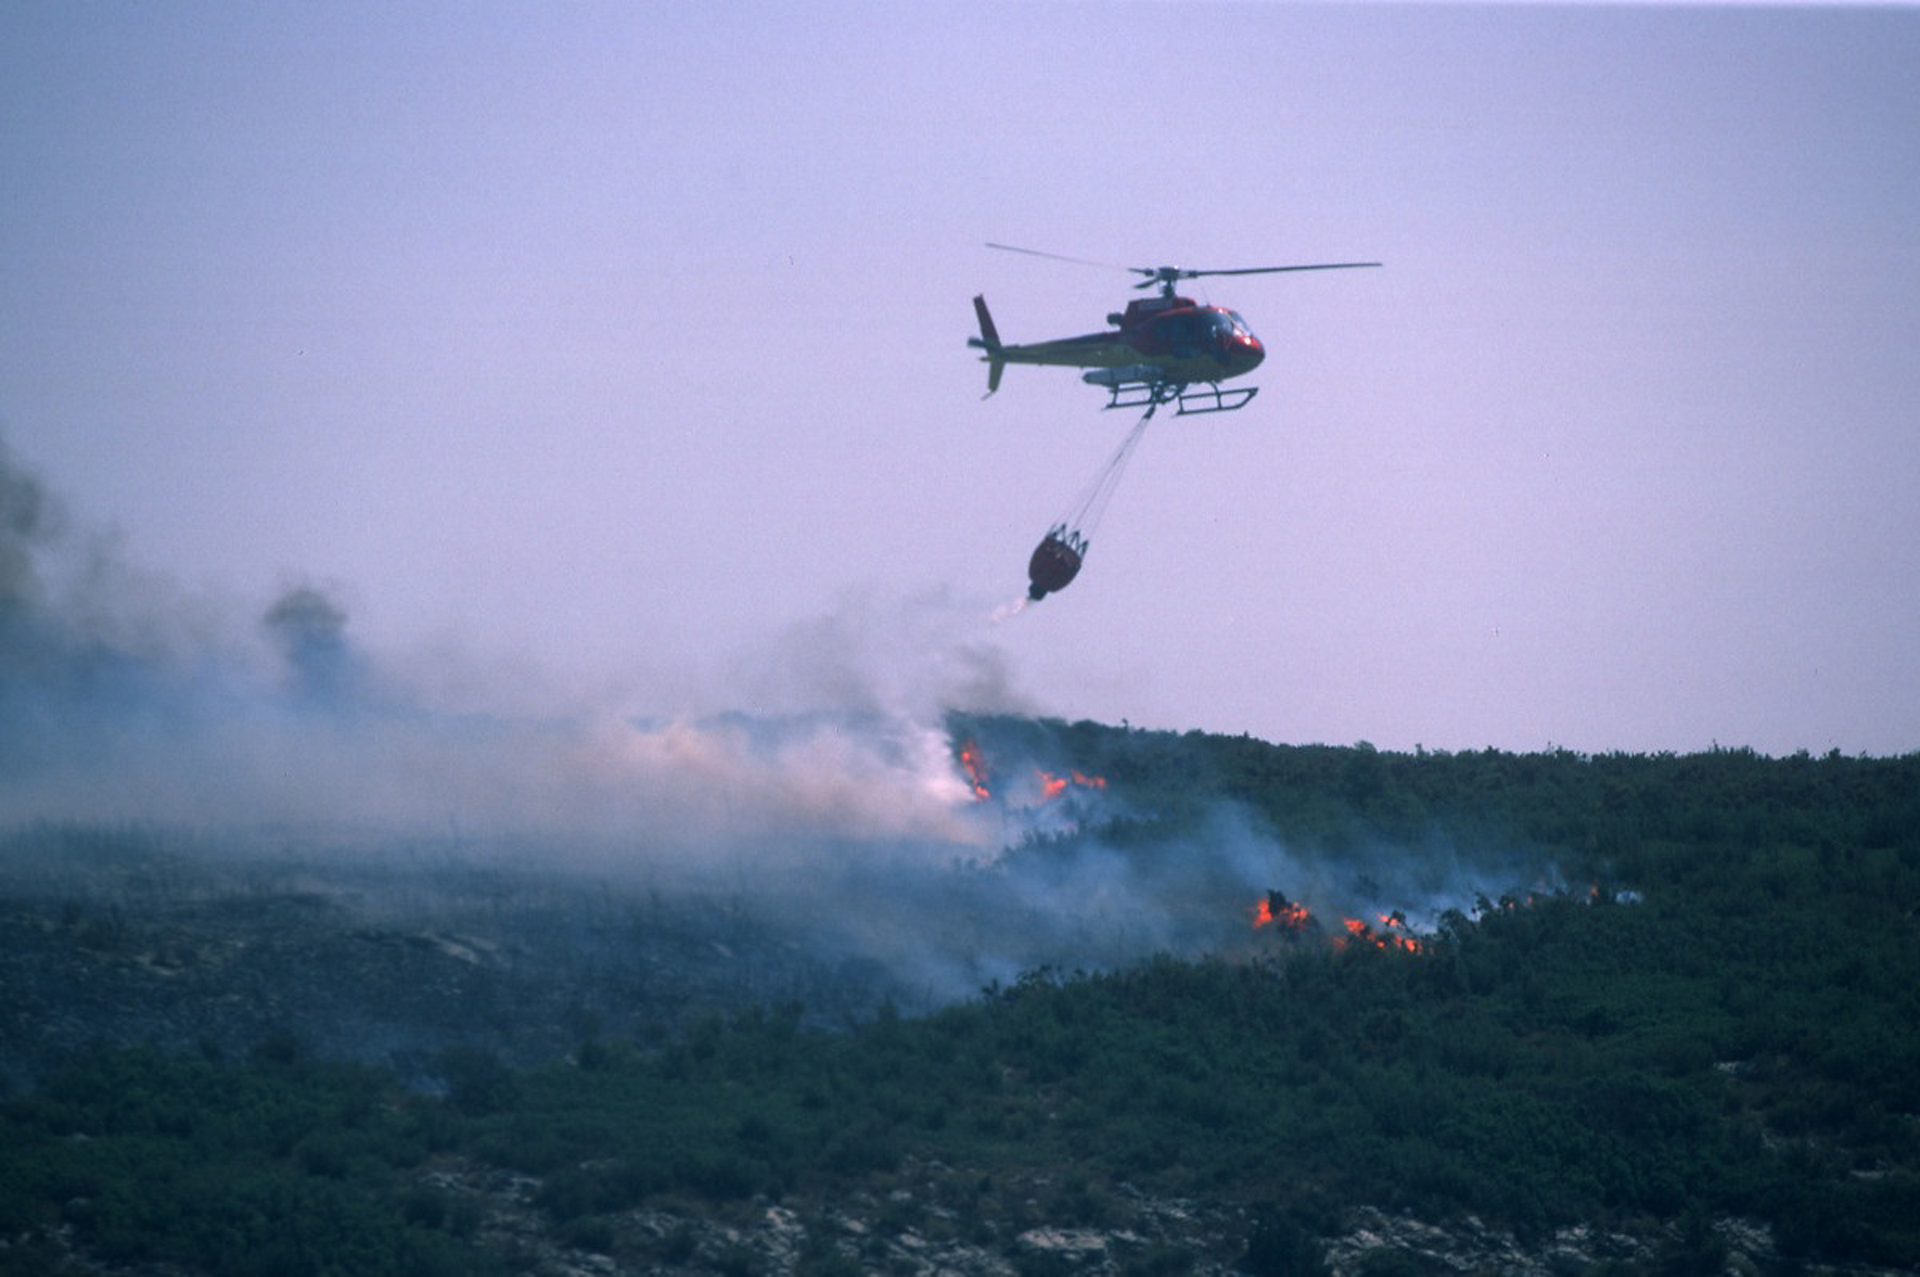 A helicopter fights a wildfire with deployment of a bucket-type water dispersal system.